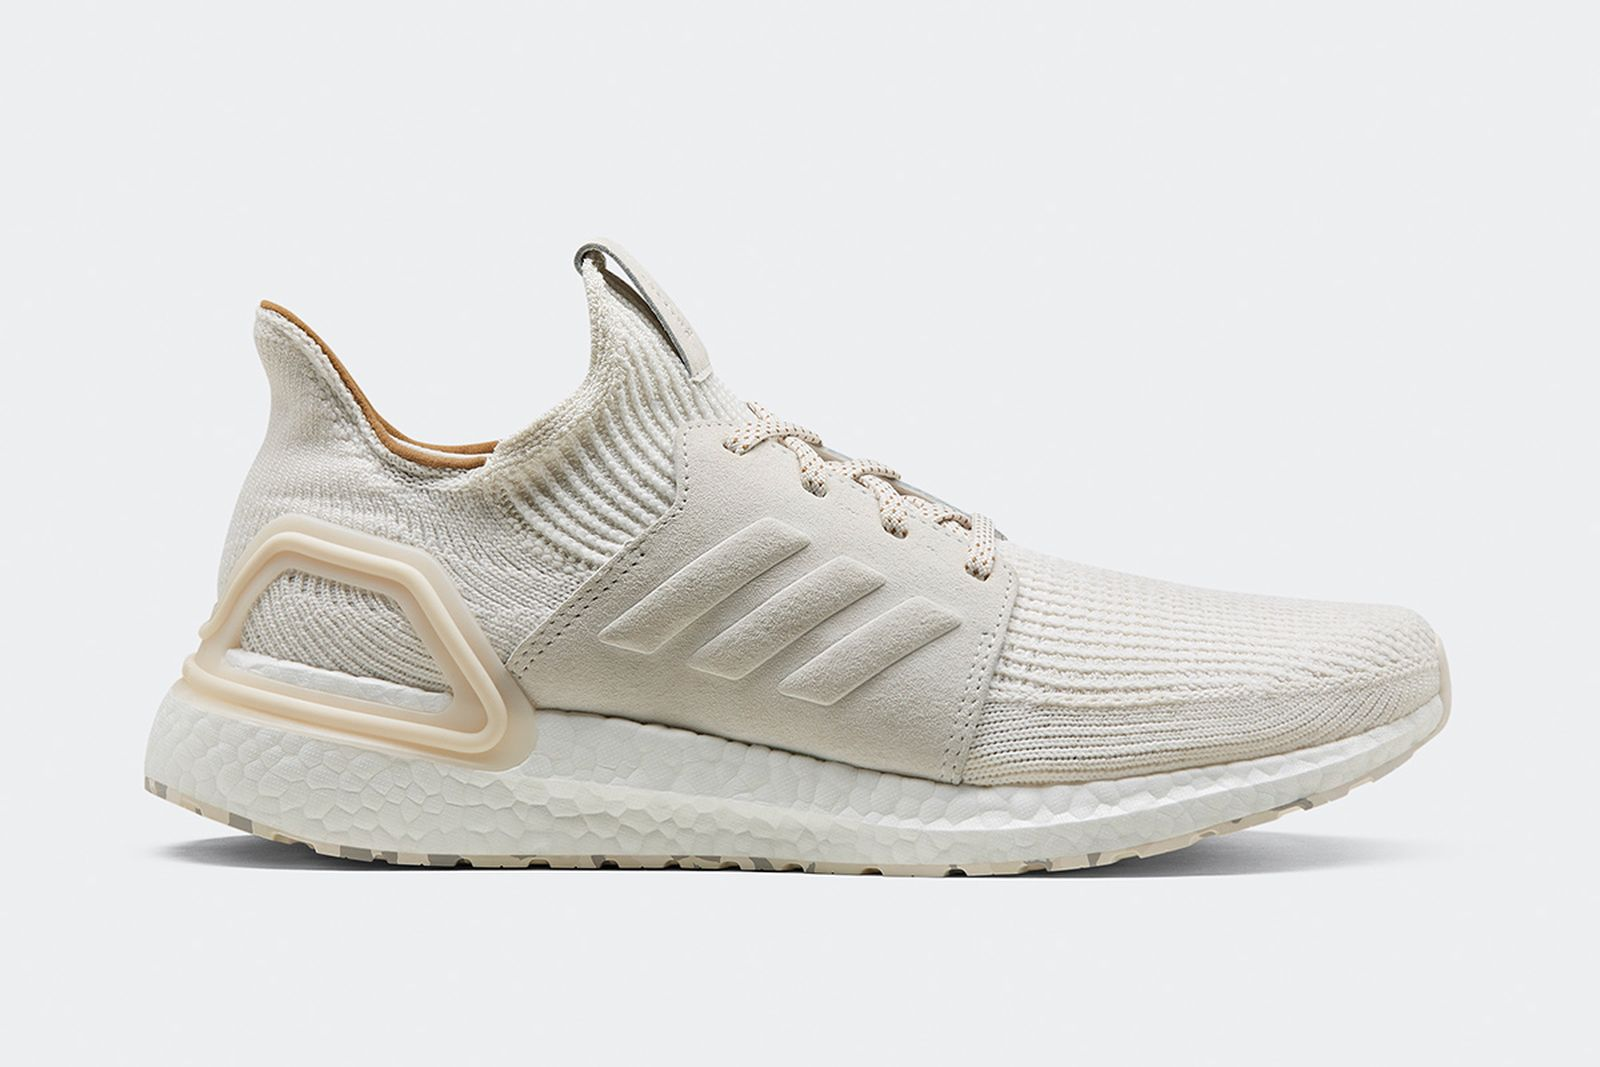 universal-works-adidas-ultraboost-19-release-date-price-01